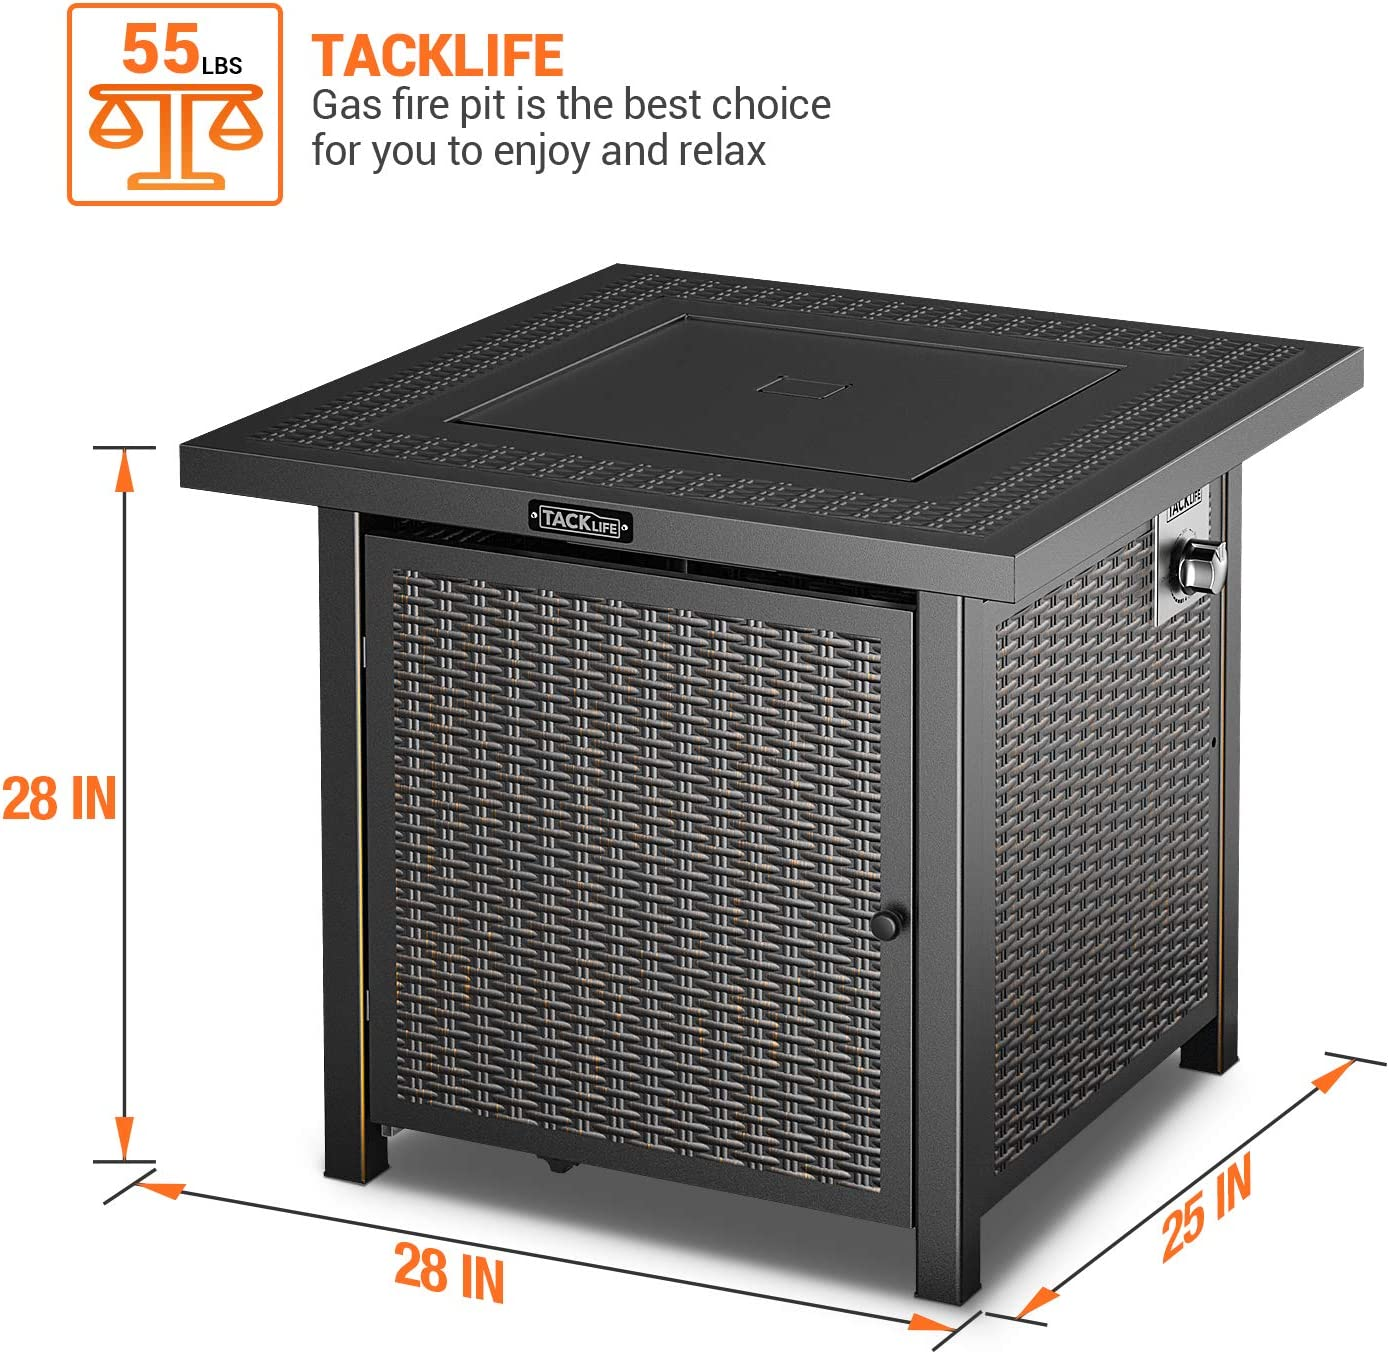 TACKLIFE Gas Fire Pit Table, 28 inch 50,000 BTU Steel Surface Outdoor Propane Fire Table with Durable Cover, CSA Certification Approval